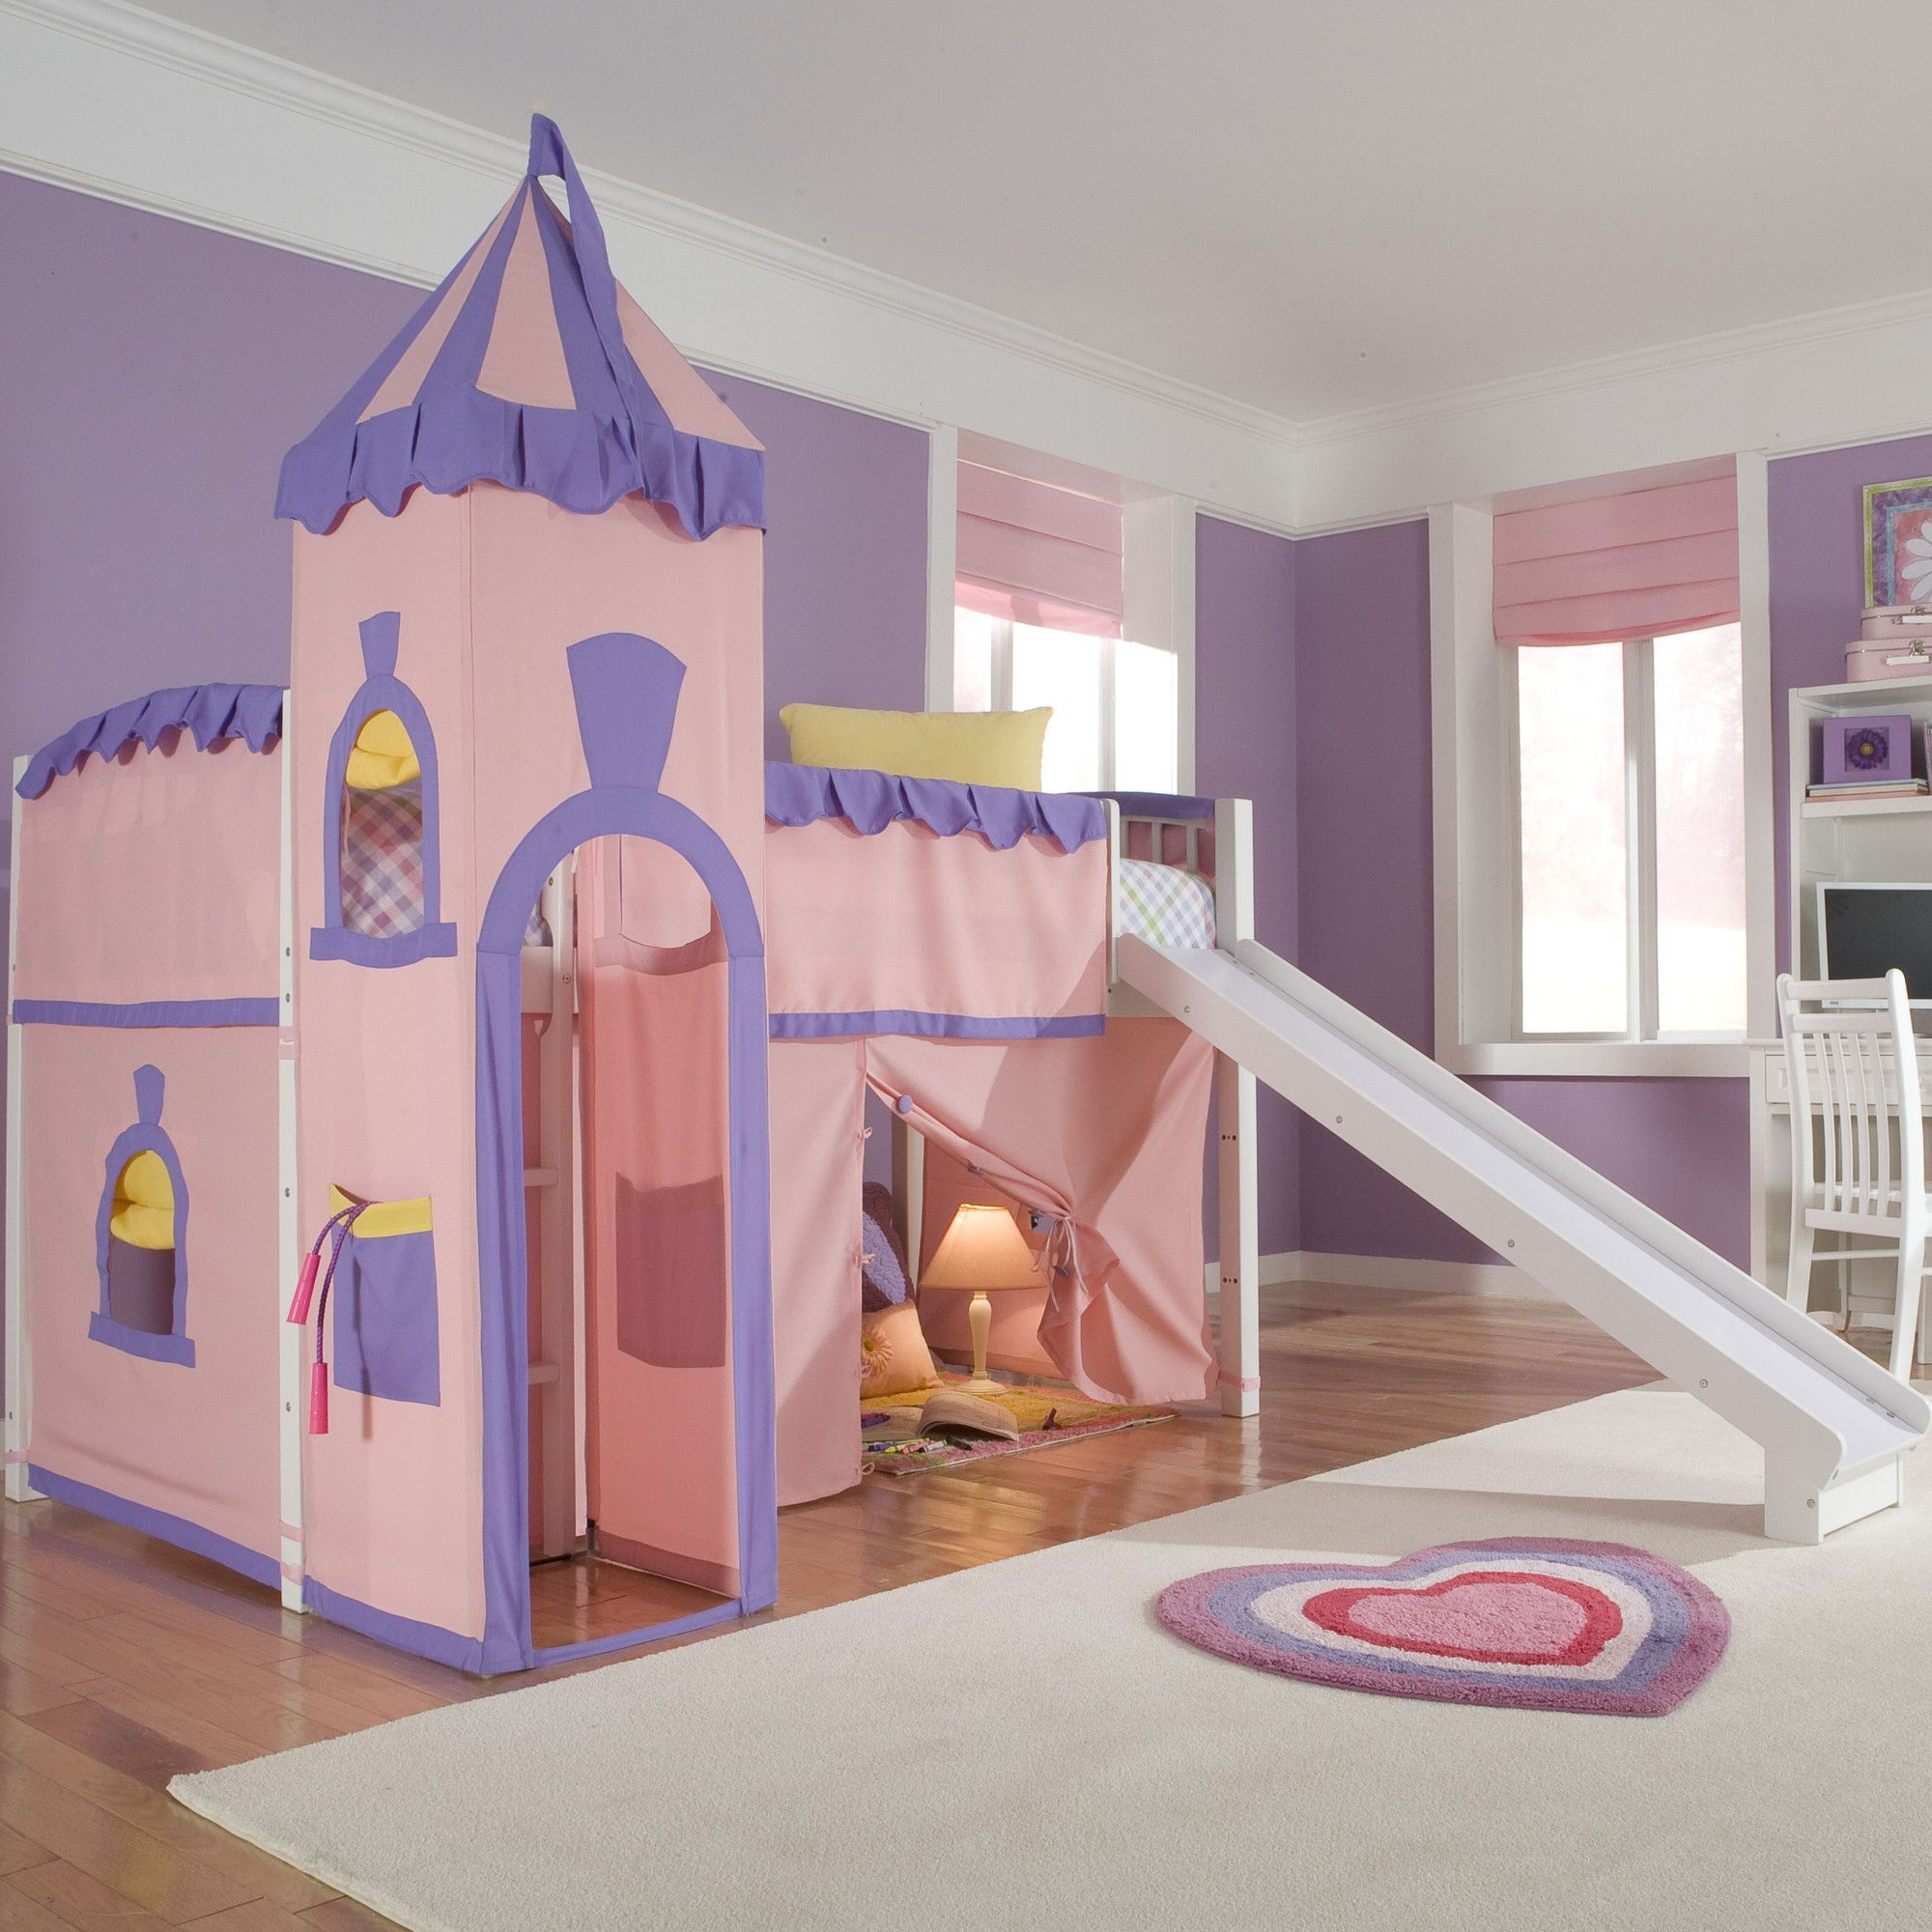 Fun Bunk Beds for Children Bed Bath and More